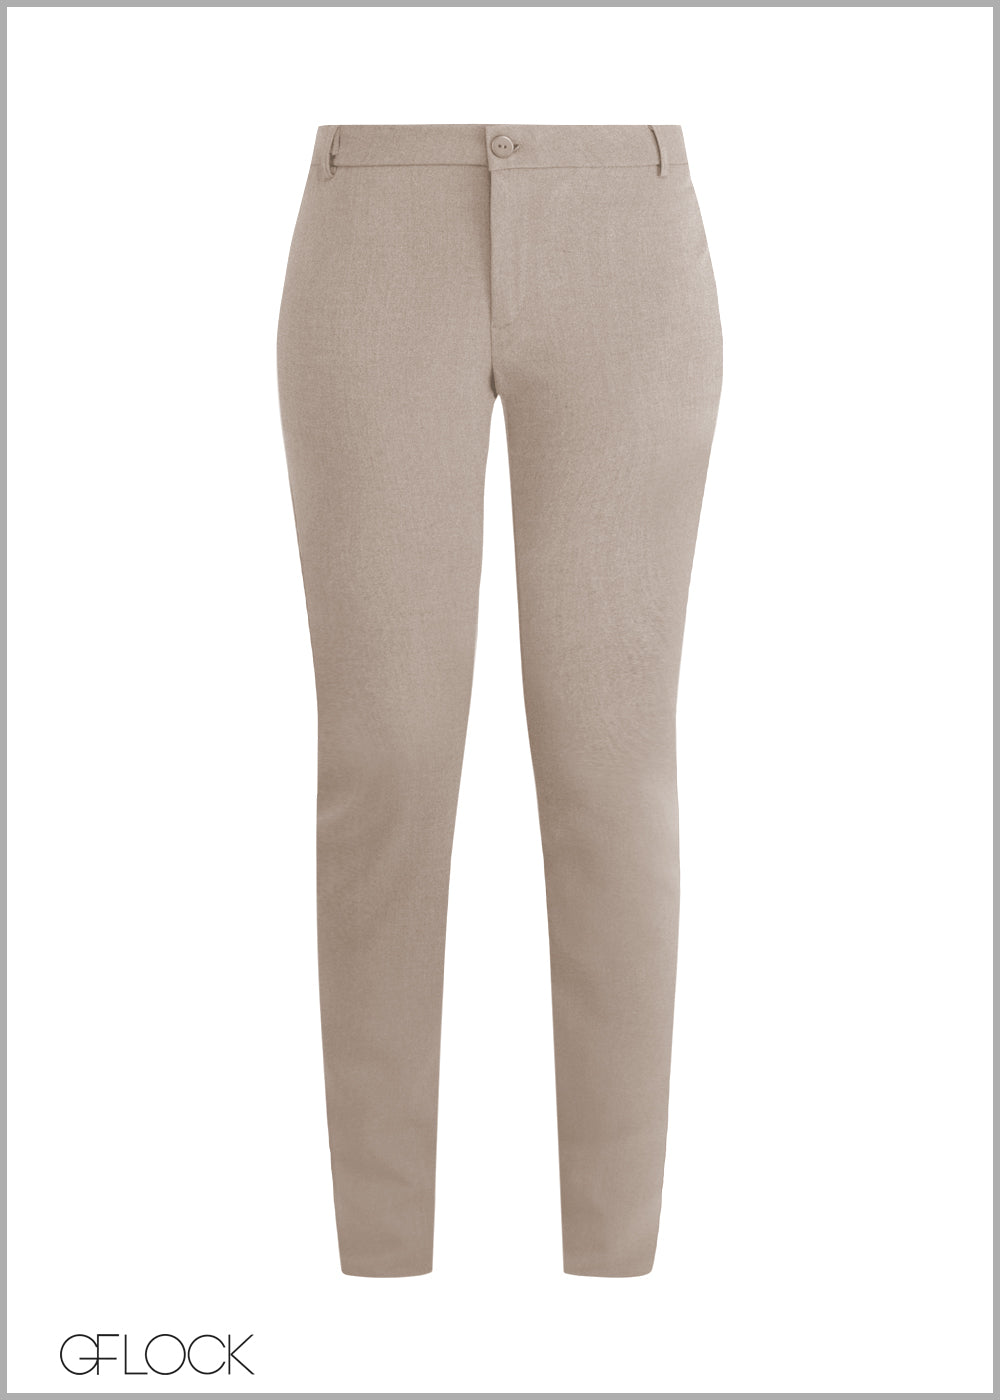 Sleek Workwear Pant - GFLOCK.LK